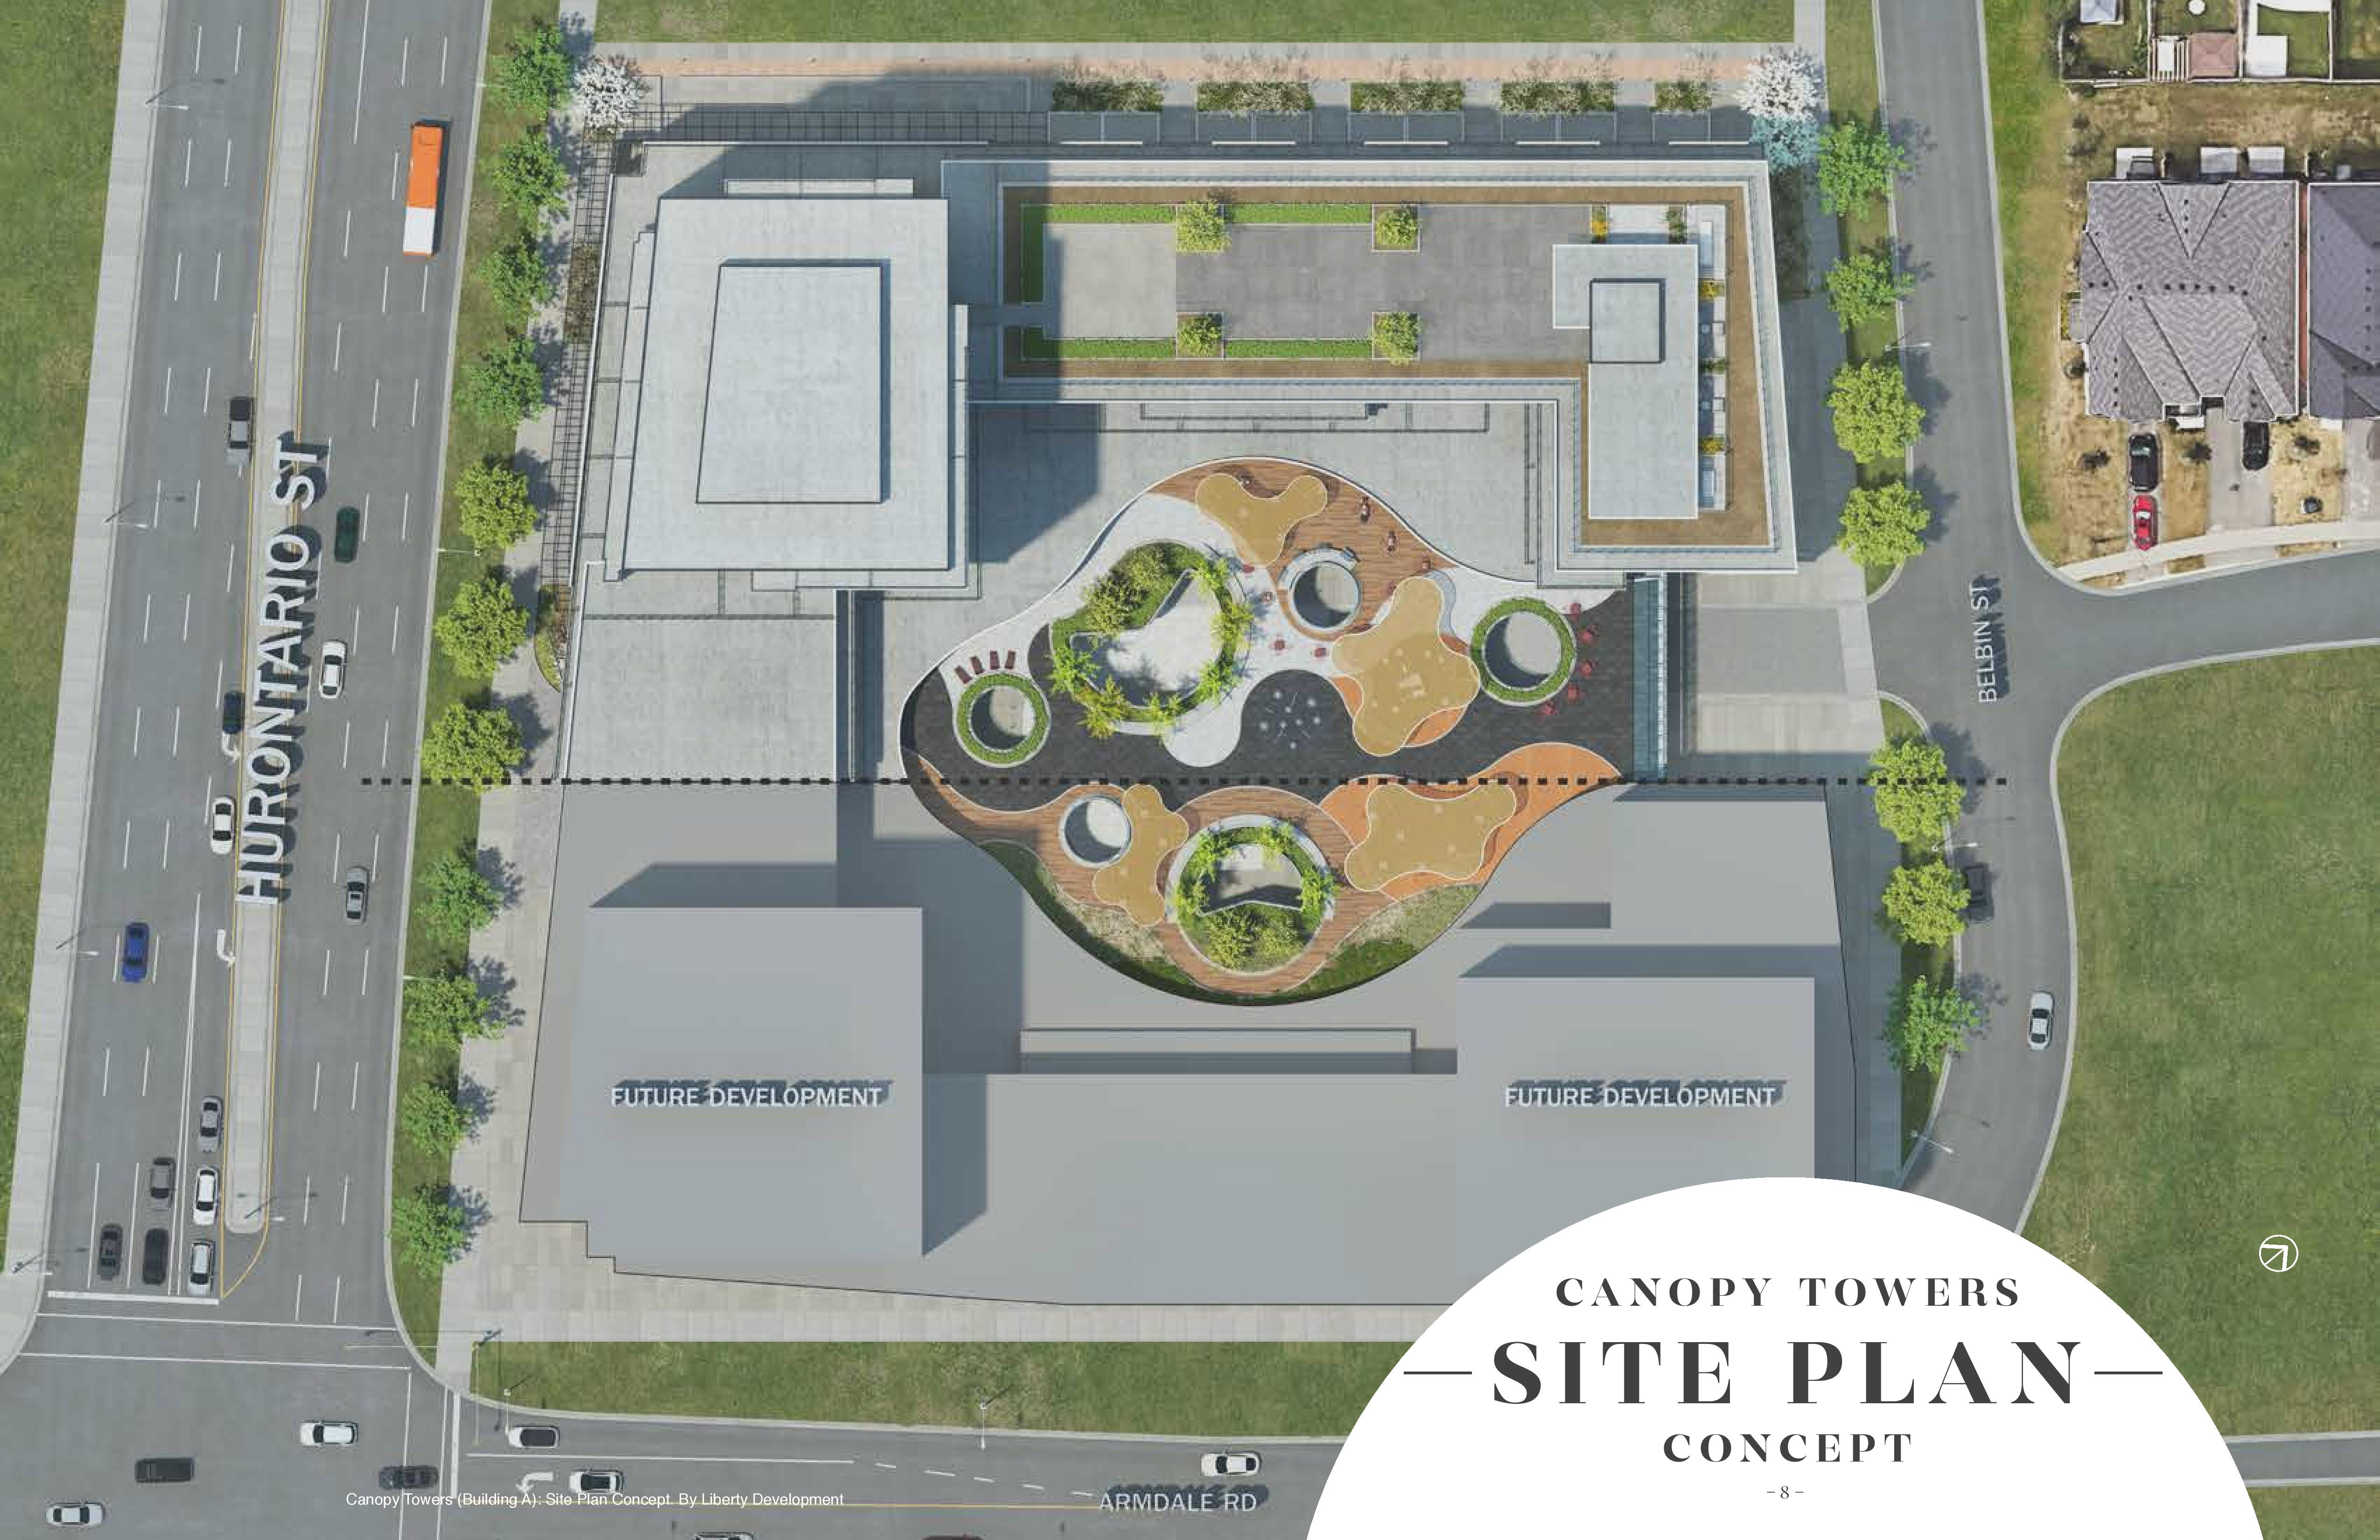 Canopy towers location